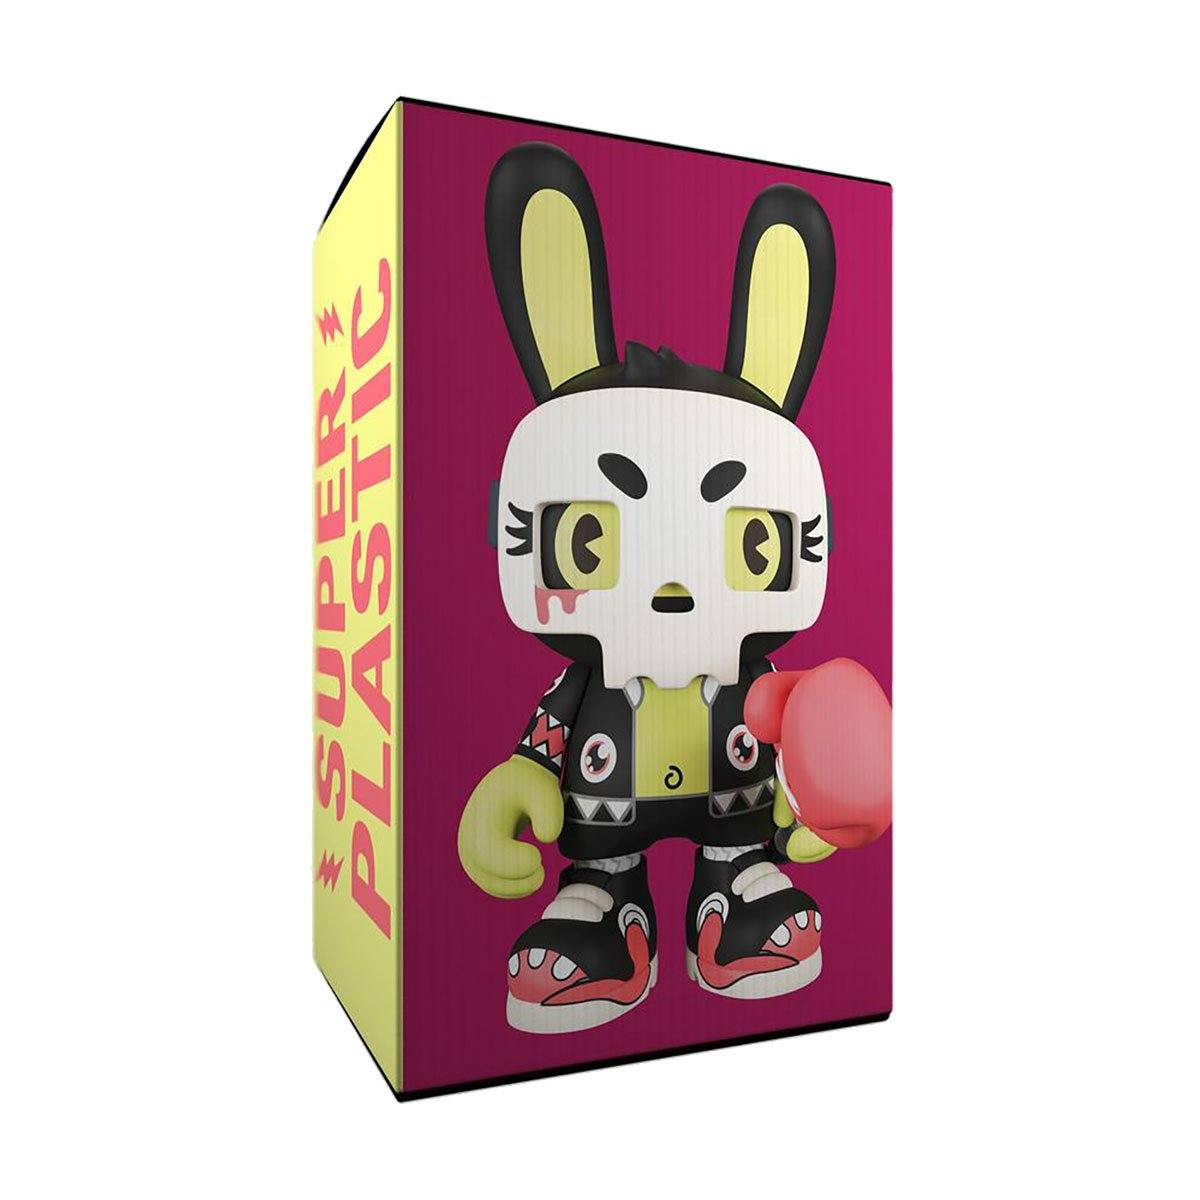 "Fever Dream Fashion Horror SuperGuggi 8"" by Guggimon & Superplastic 8-inch Vinyl Figure Superplastic"